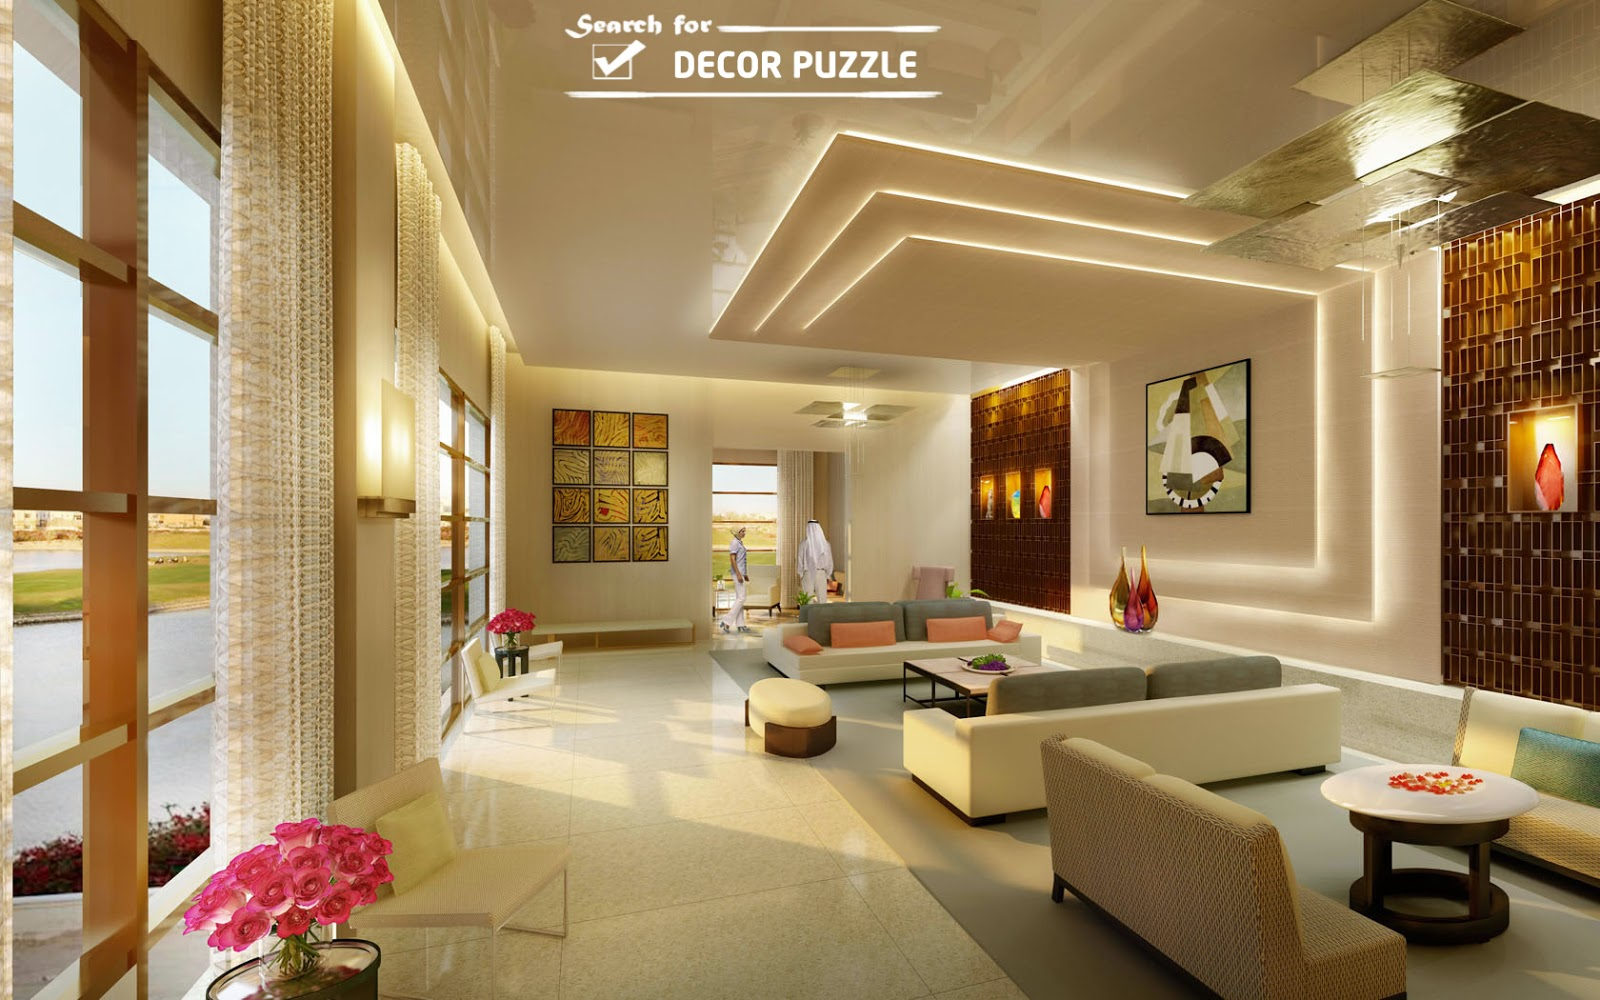 Genial POP Design For Roof, Pop False Ceiling Designs Catalogue For Living Room